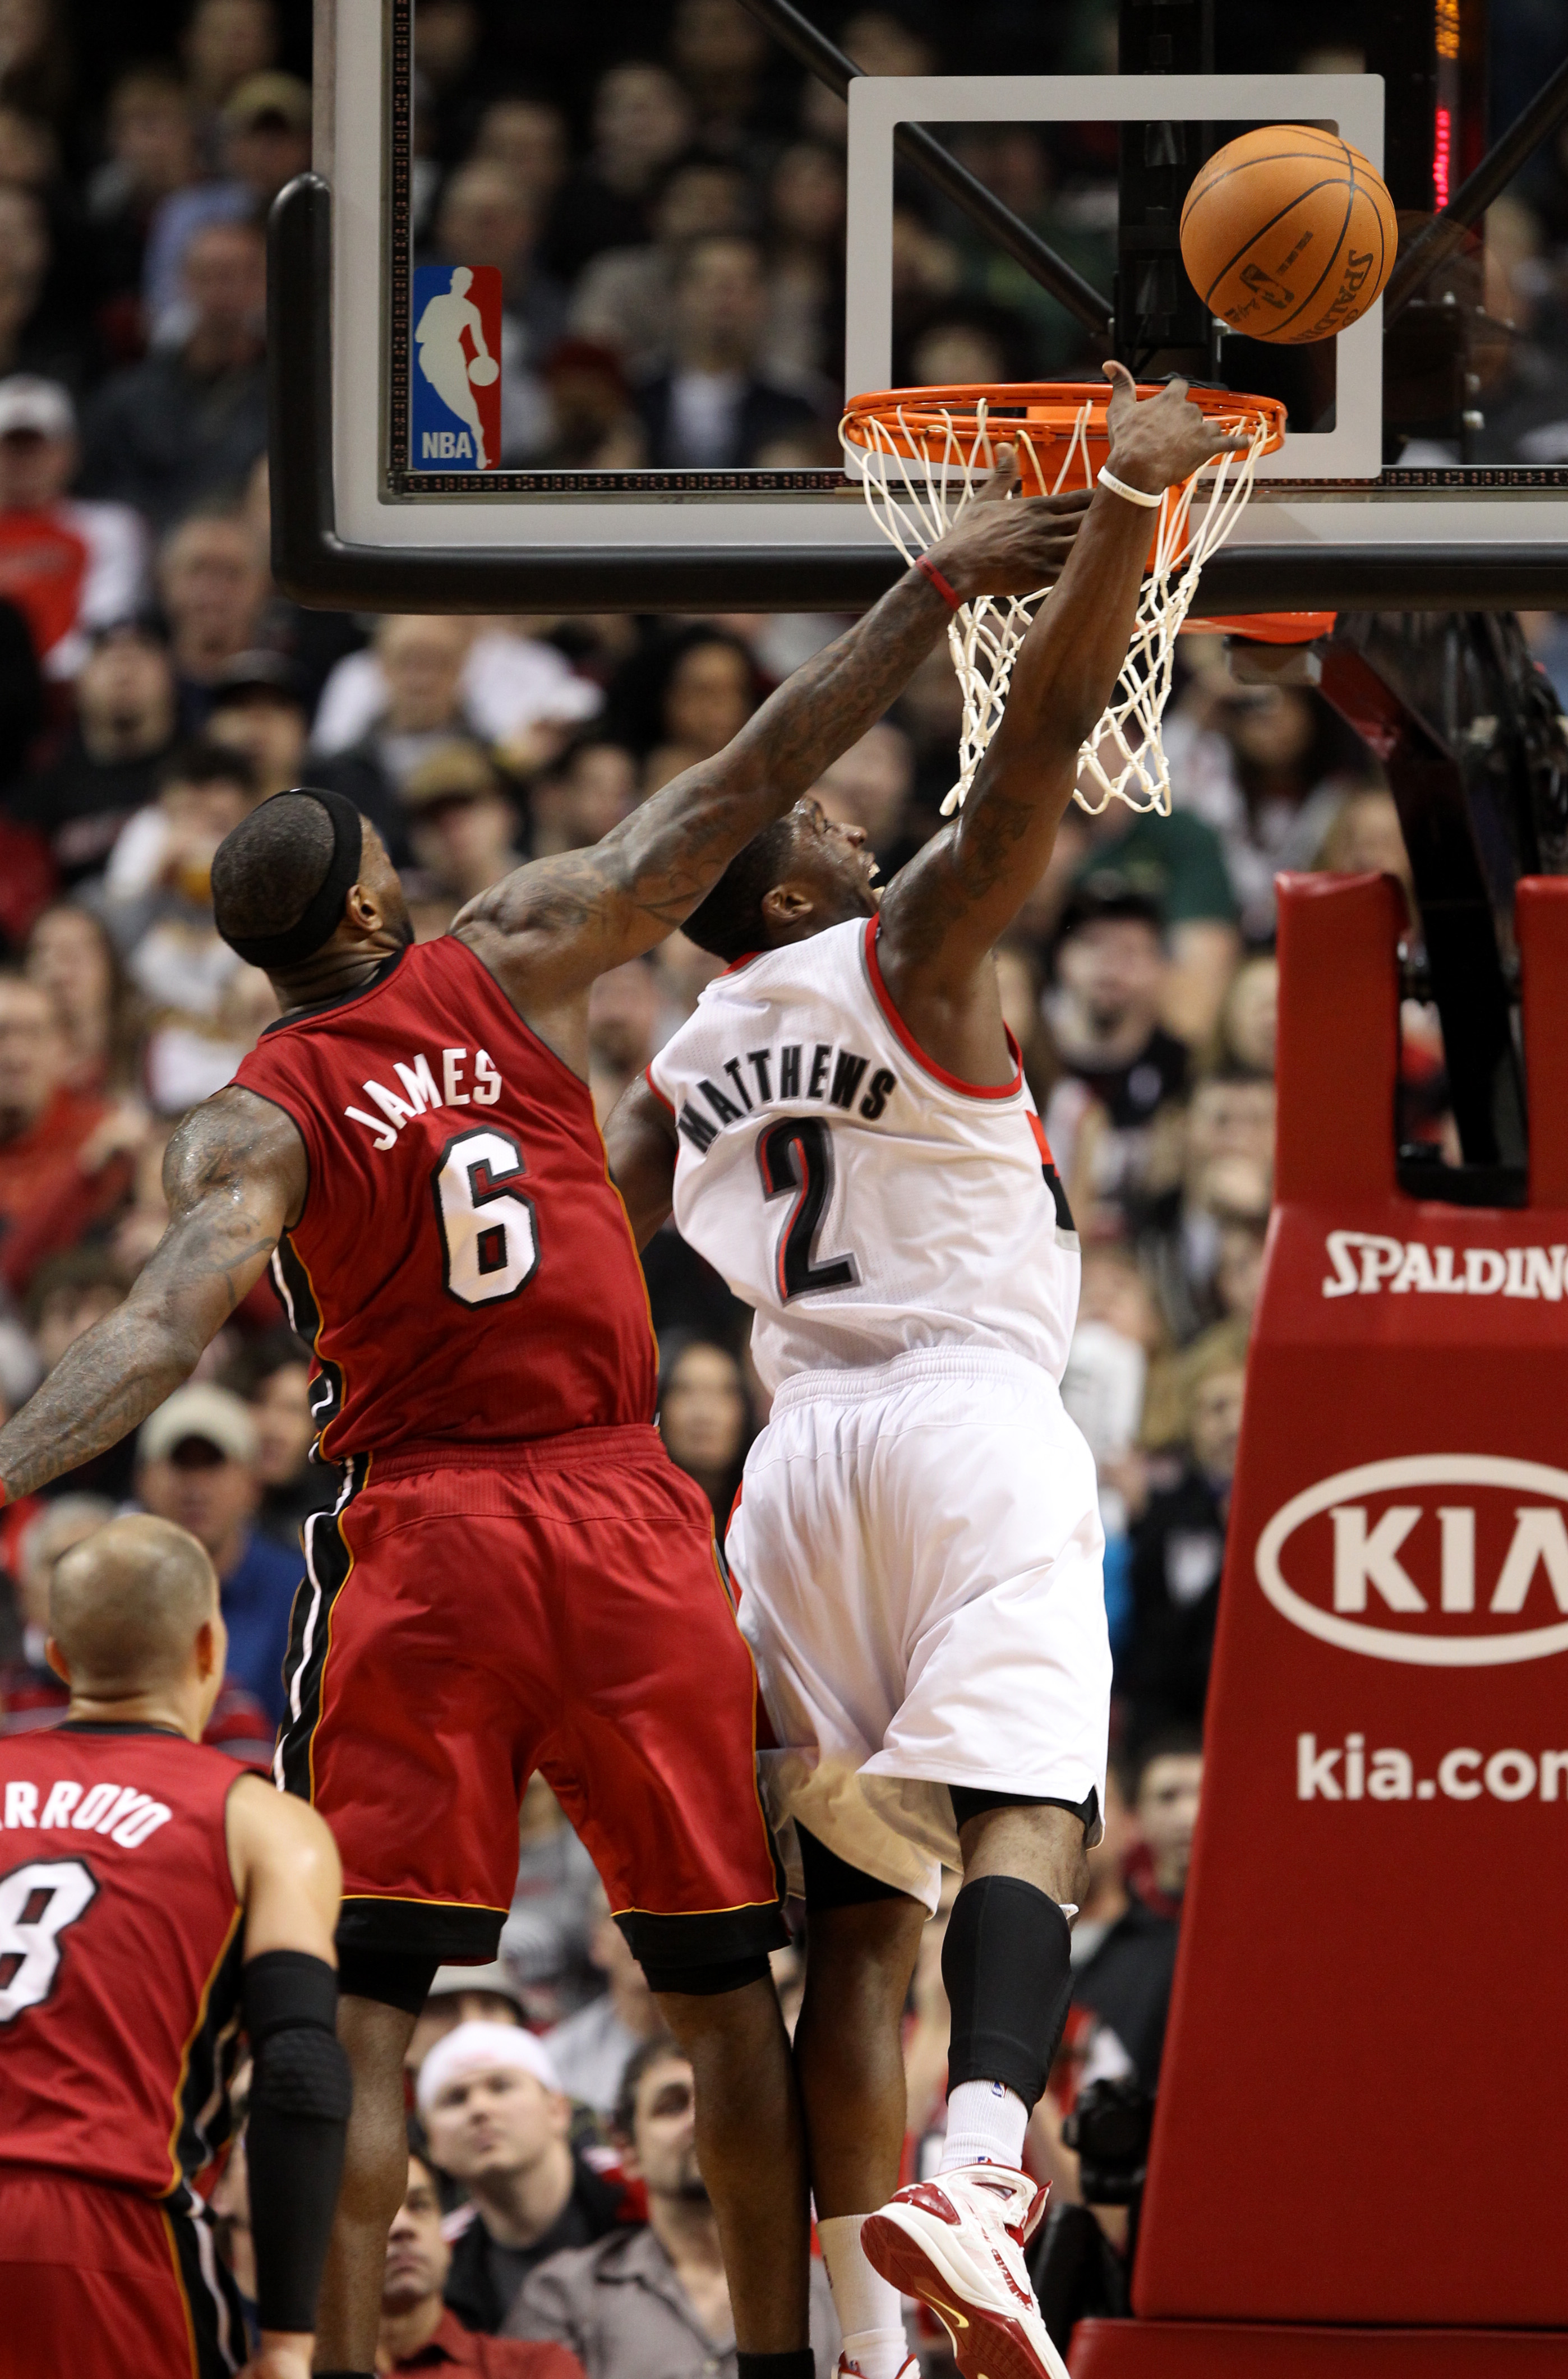 PORTLAND, OR - JANUARY 9: Wesley Matthews #2 of the Portland Trail Blazers has his shot blocked by LeBron James #6 of the Miami Heat during a game on January 9, 2011 at the Rose Garden Arena in Portland, Oregon. NOTE TO USER: User expressly acknowledges a